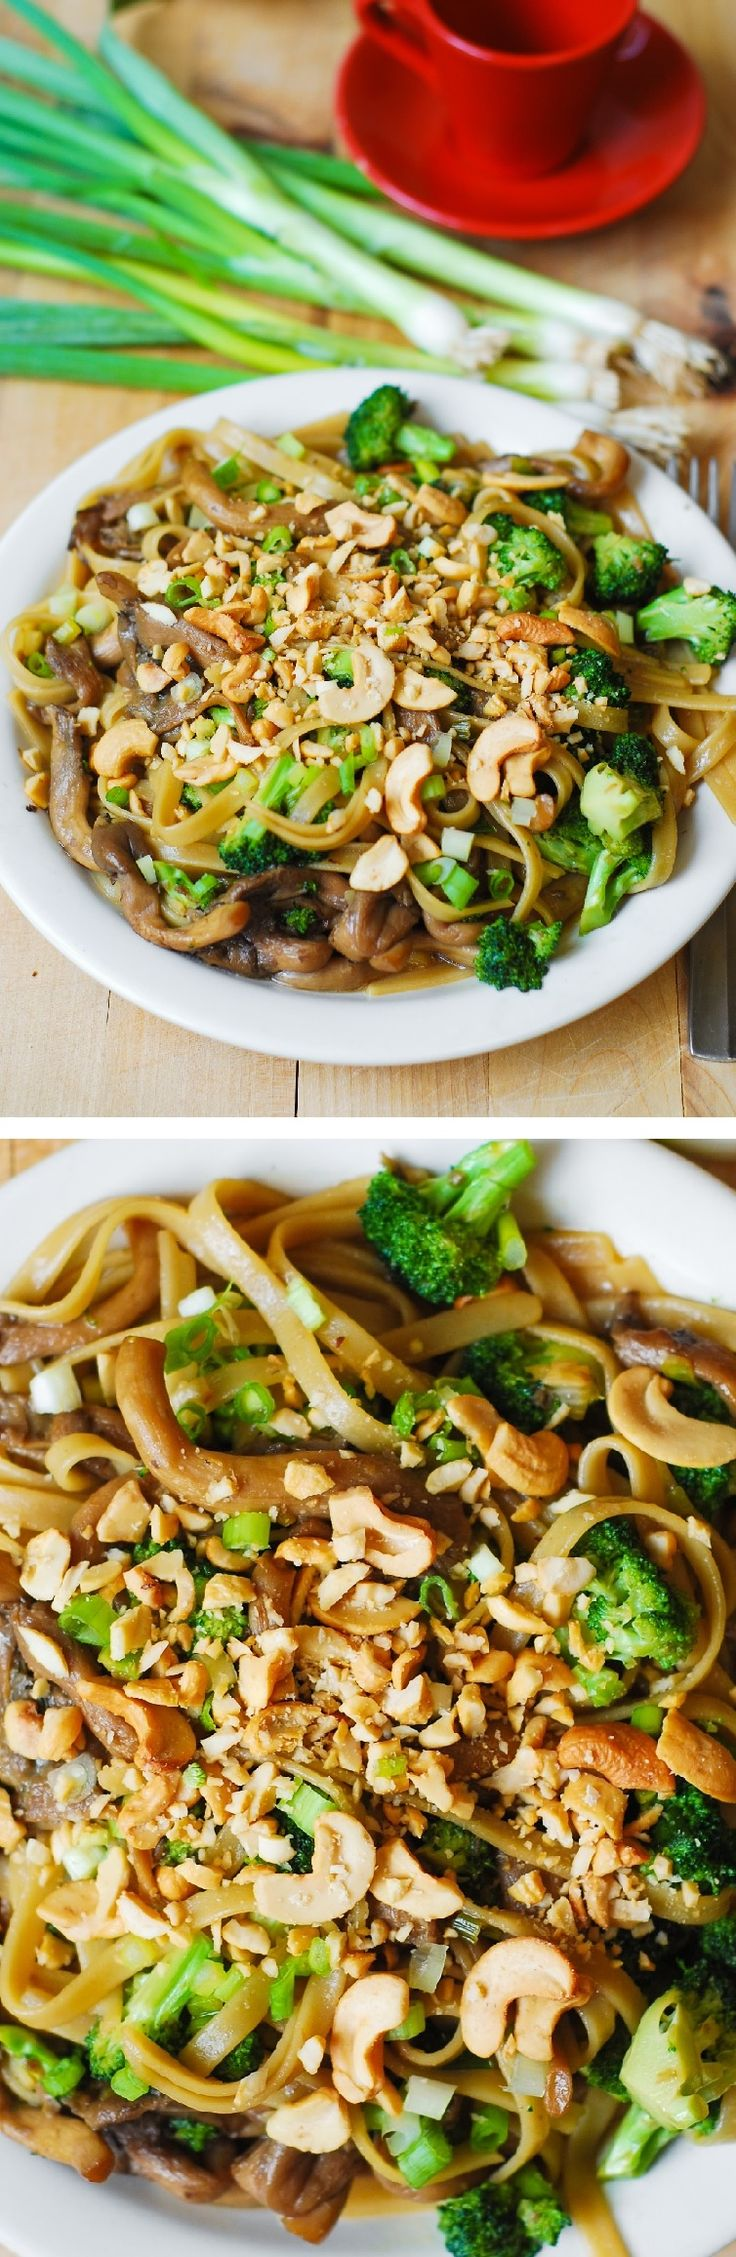 how to cook broccoli with mushroom and oyster sauce